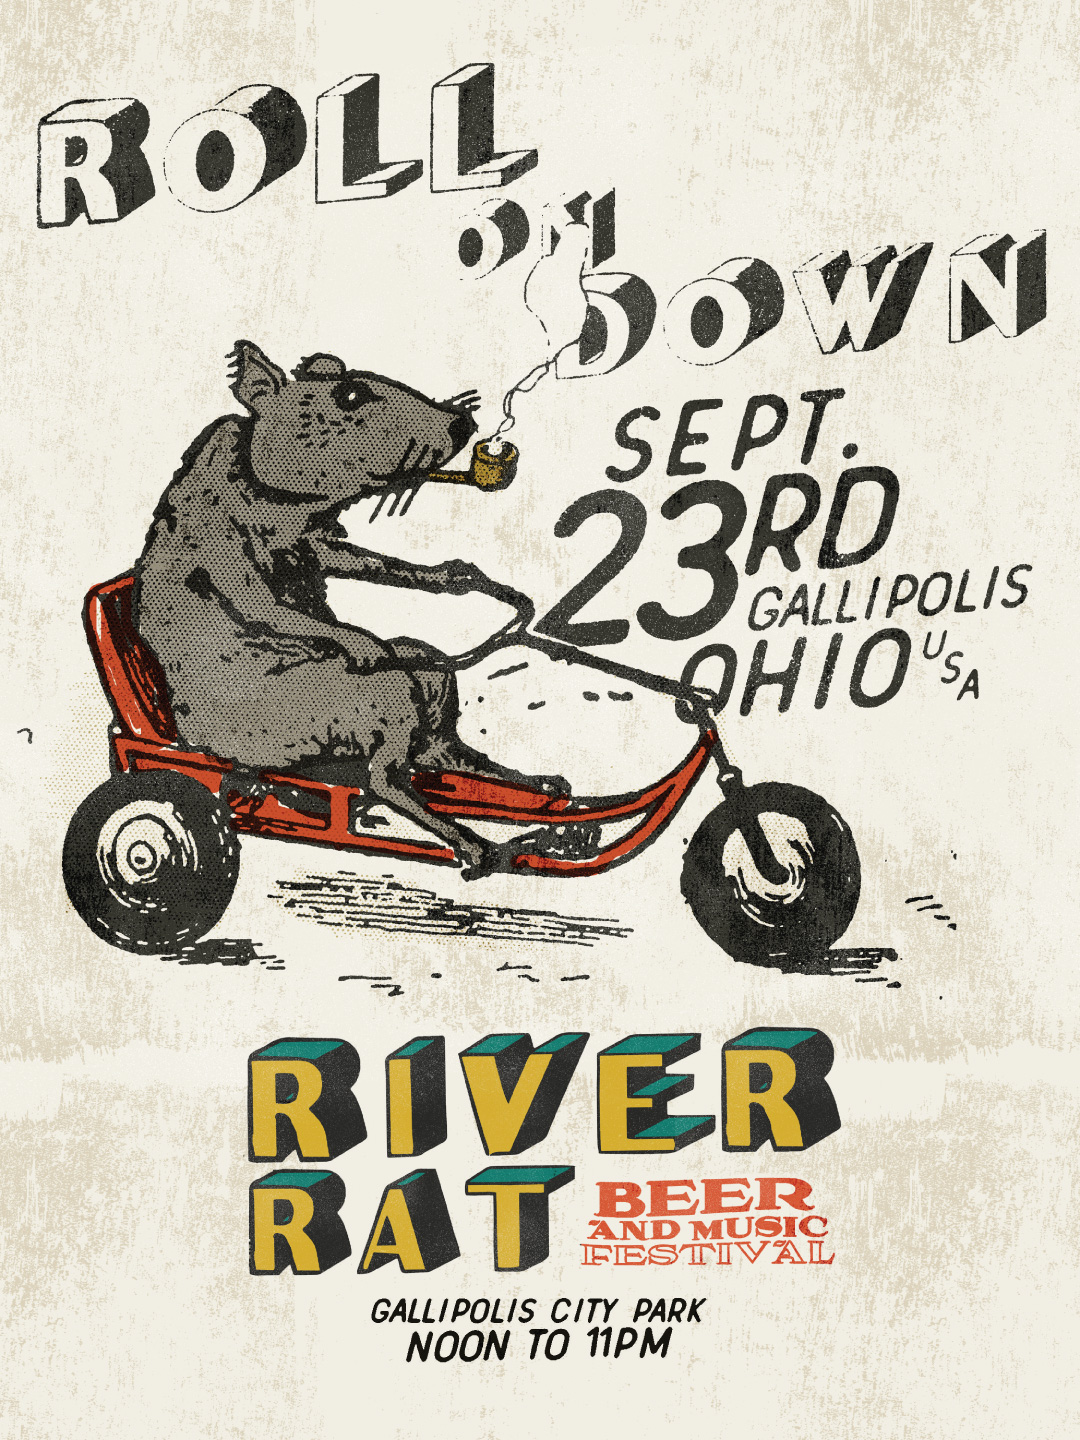 River Rat Roll On Down Promo